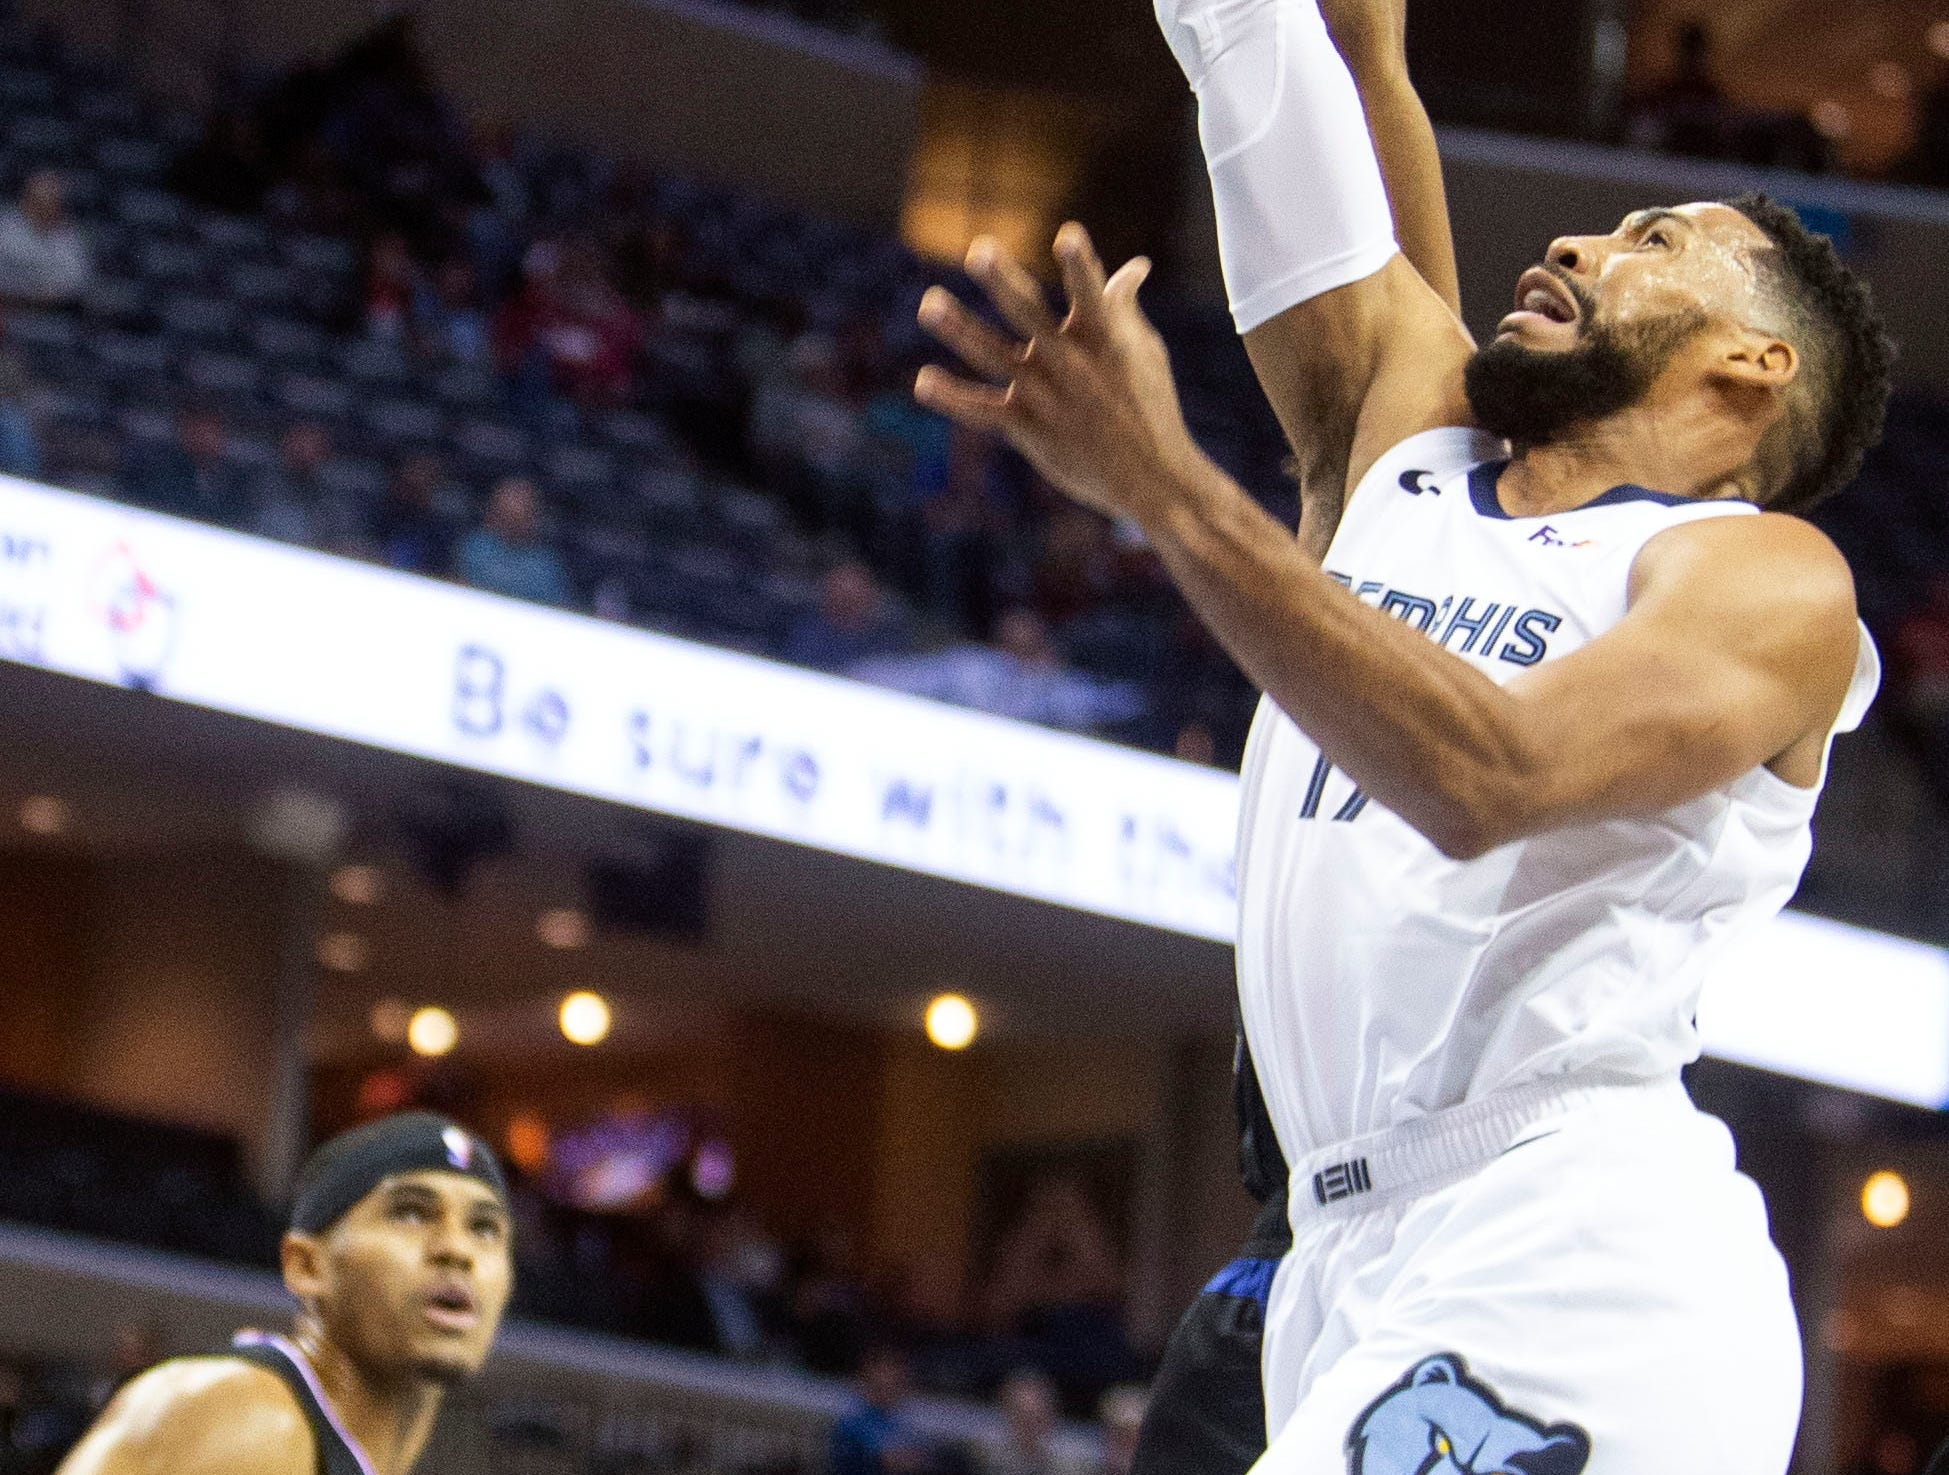 Memphis Grizzles guard Garrett Temple (17) shoots over   during the first half of a NBA basketball game between the Memphis Grizzlies and the  Los Angeles Clippers in the Fedex Forum, Wednesday, Dec. 5, 2018.